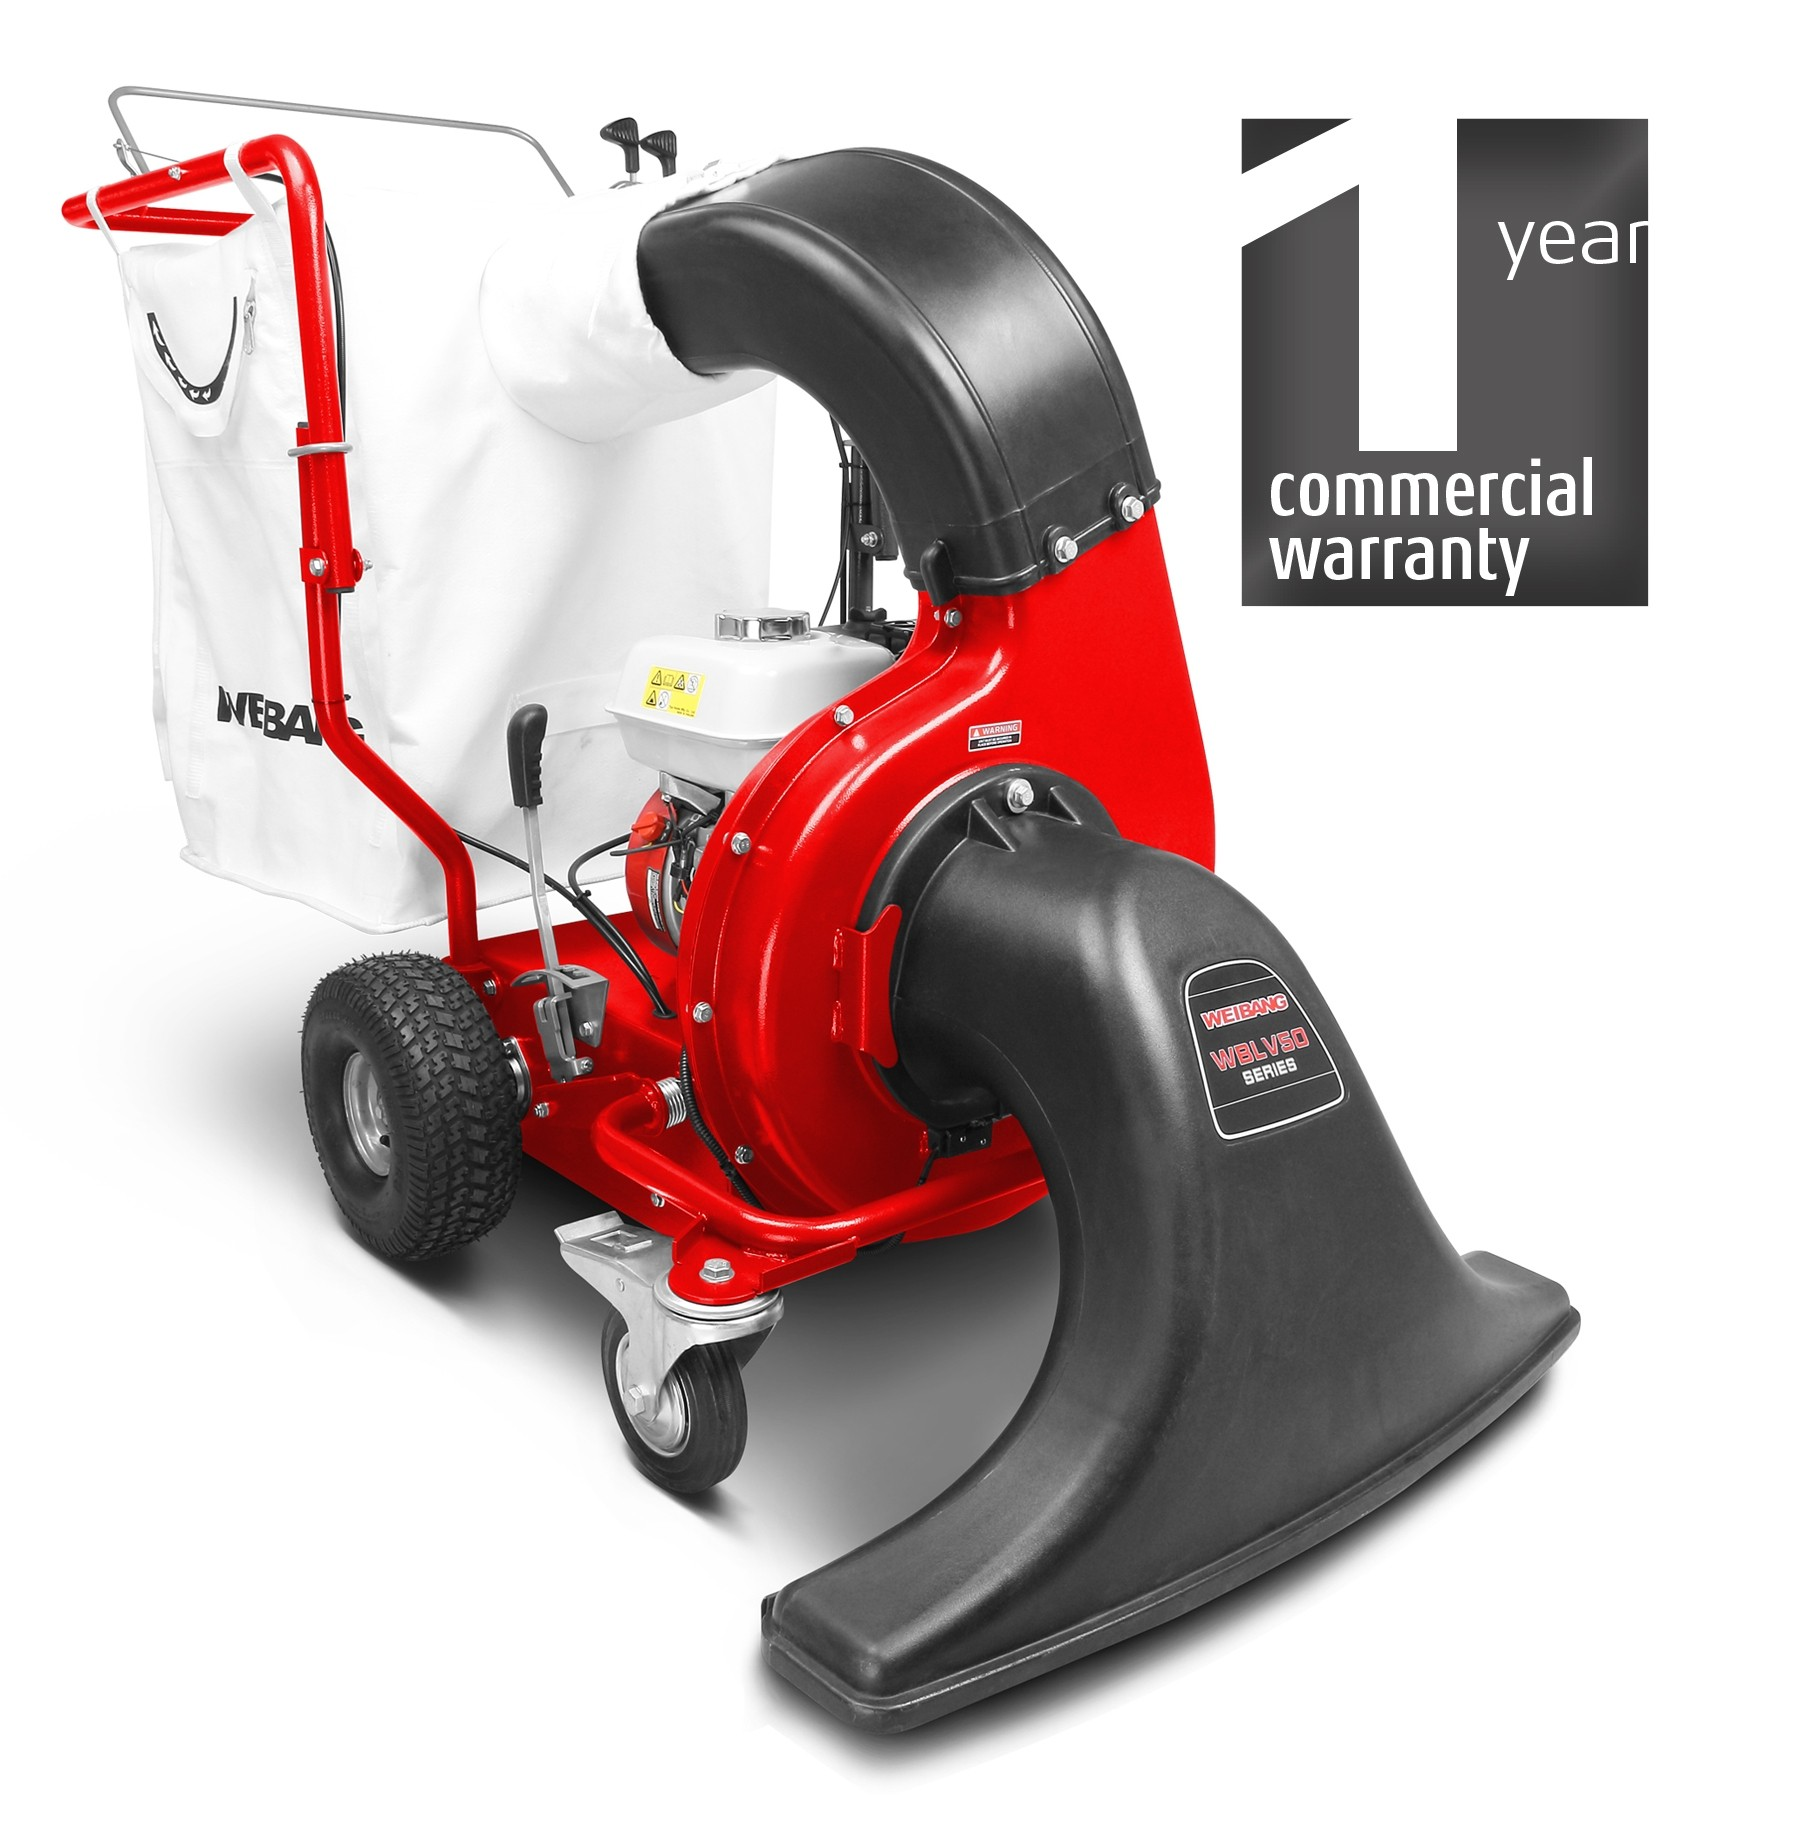 Weibang LV800 PRO leaf and litter vacuum